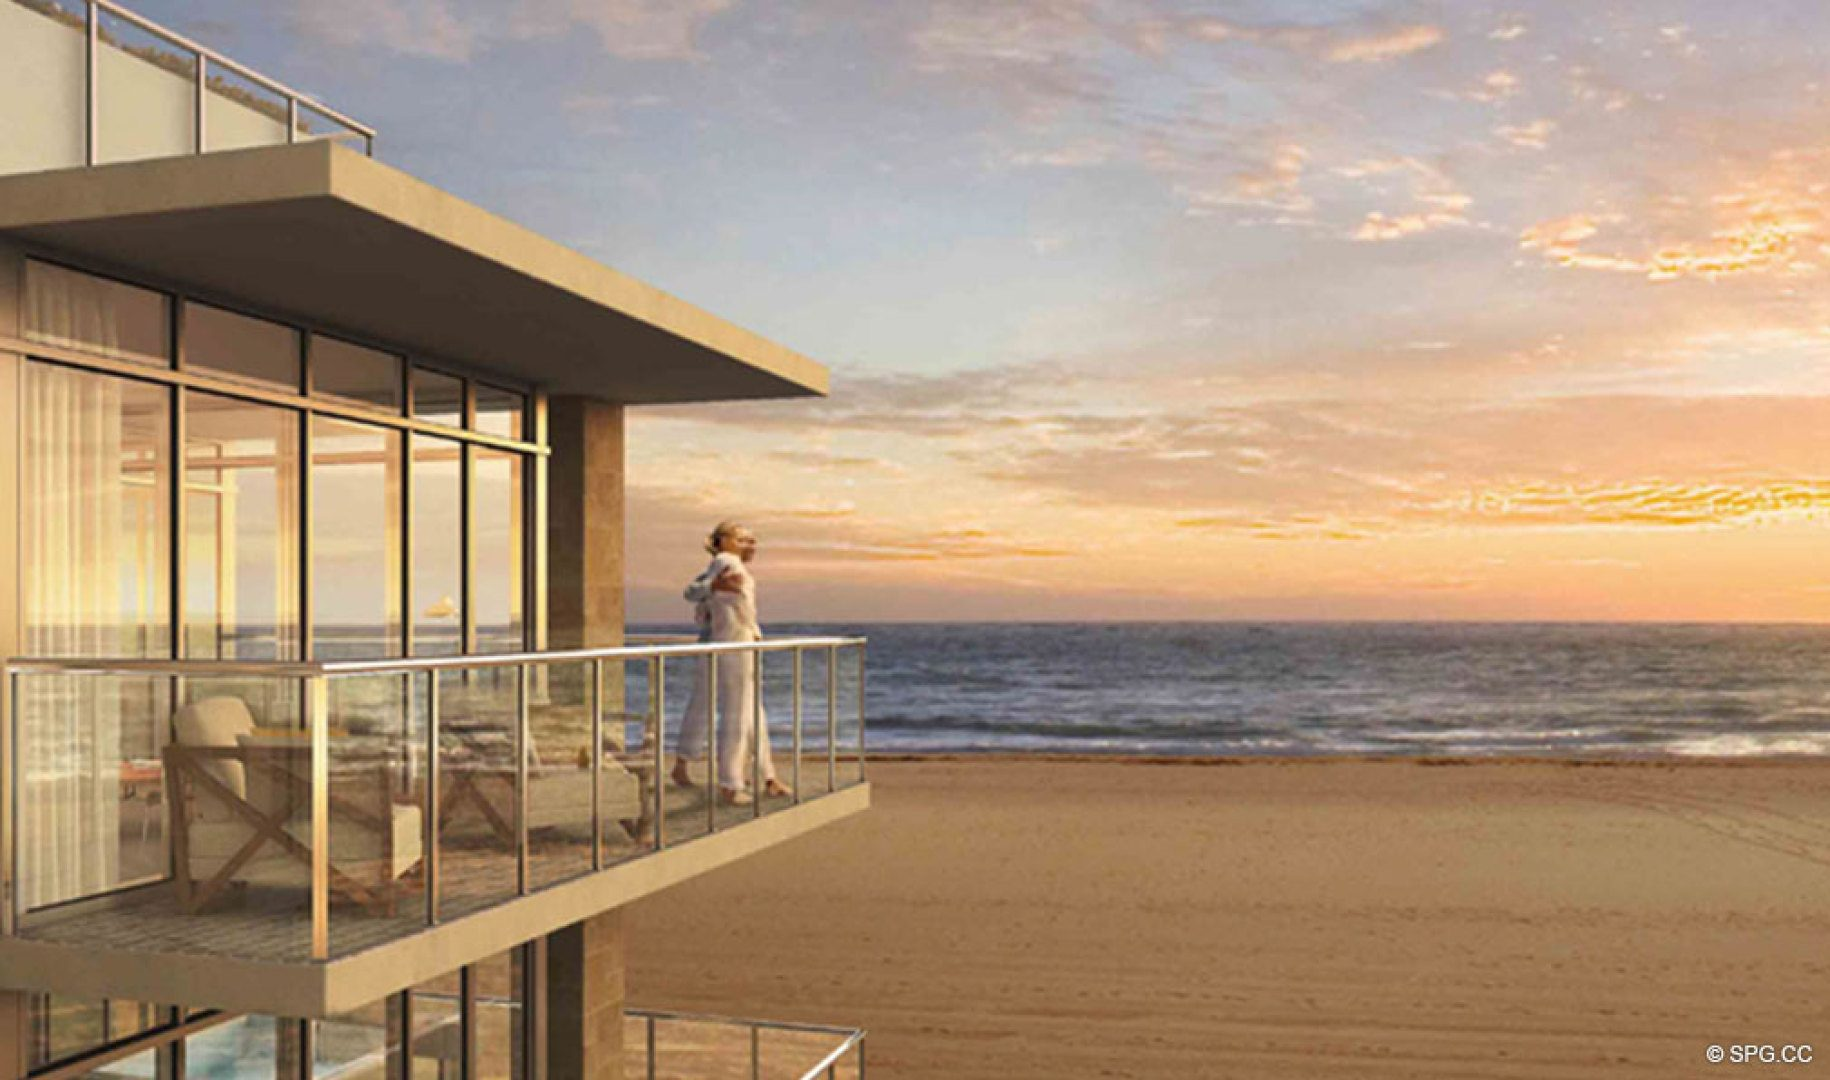 Enjoy Beautiful Sunrises at Sage Beach, Luxury Oceanfront Condos in Hollywood Beach Florida 33019